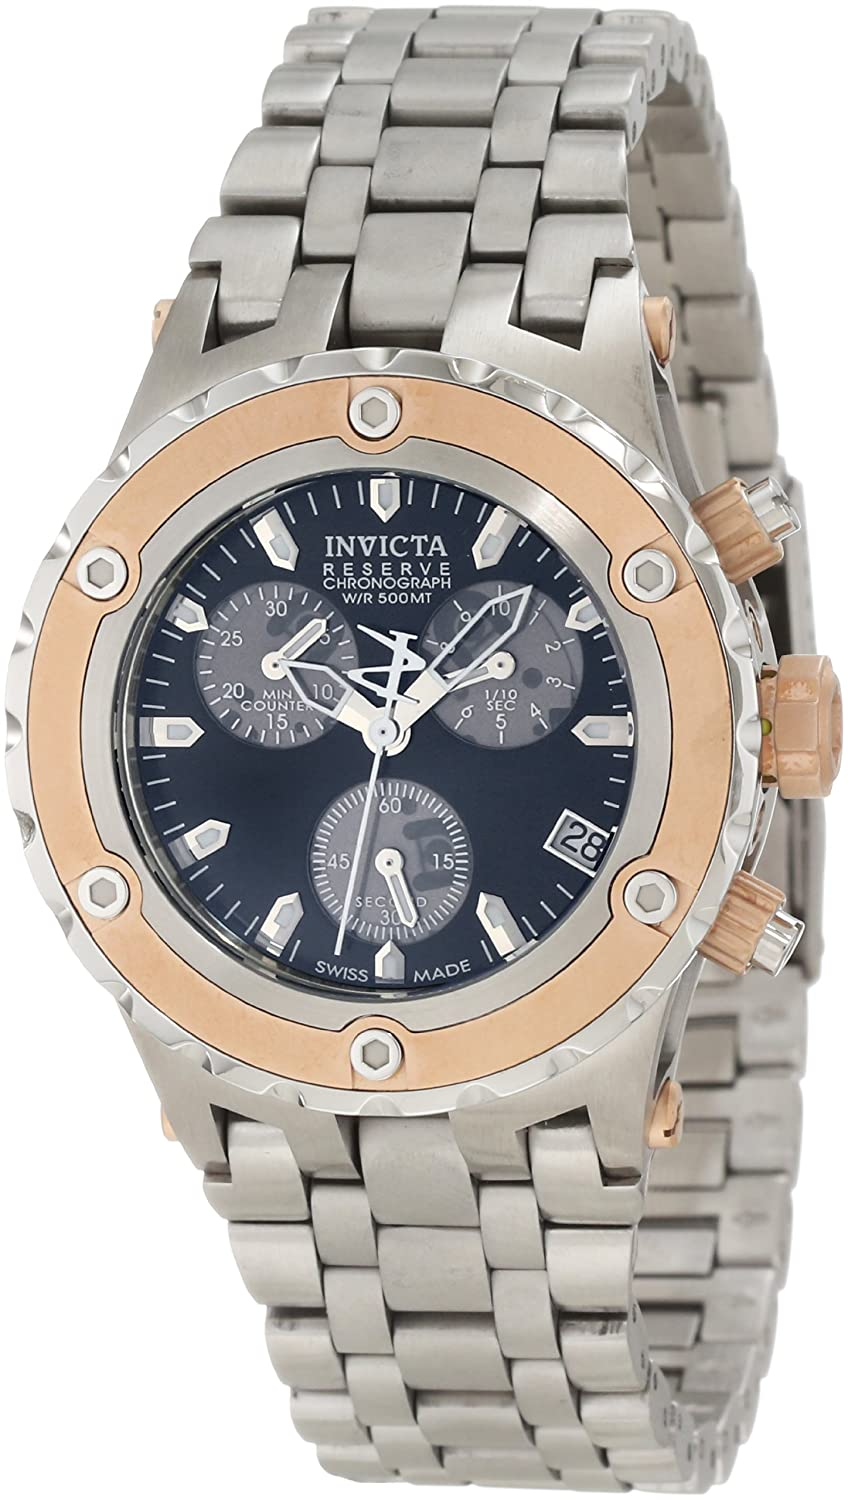 1ad7a23dffe Invicta mens subaqua reserve chronograph black dial watch invicta watches  jpg 848x1500 Invicta reserve subaqua